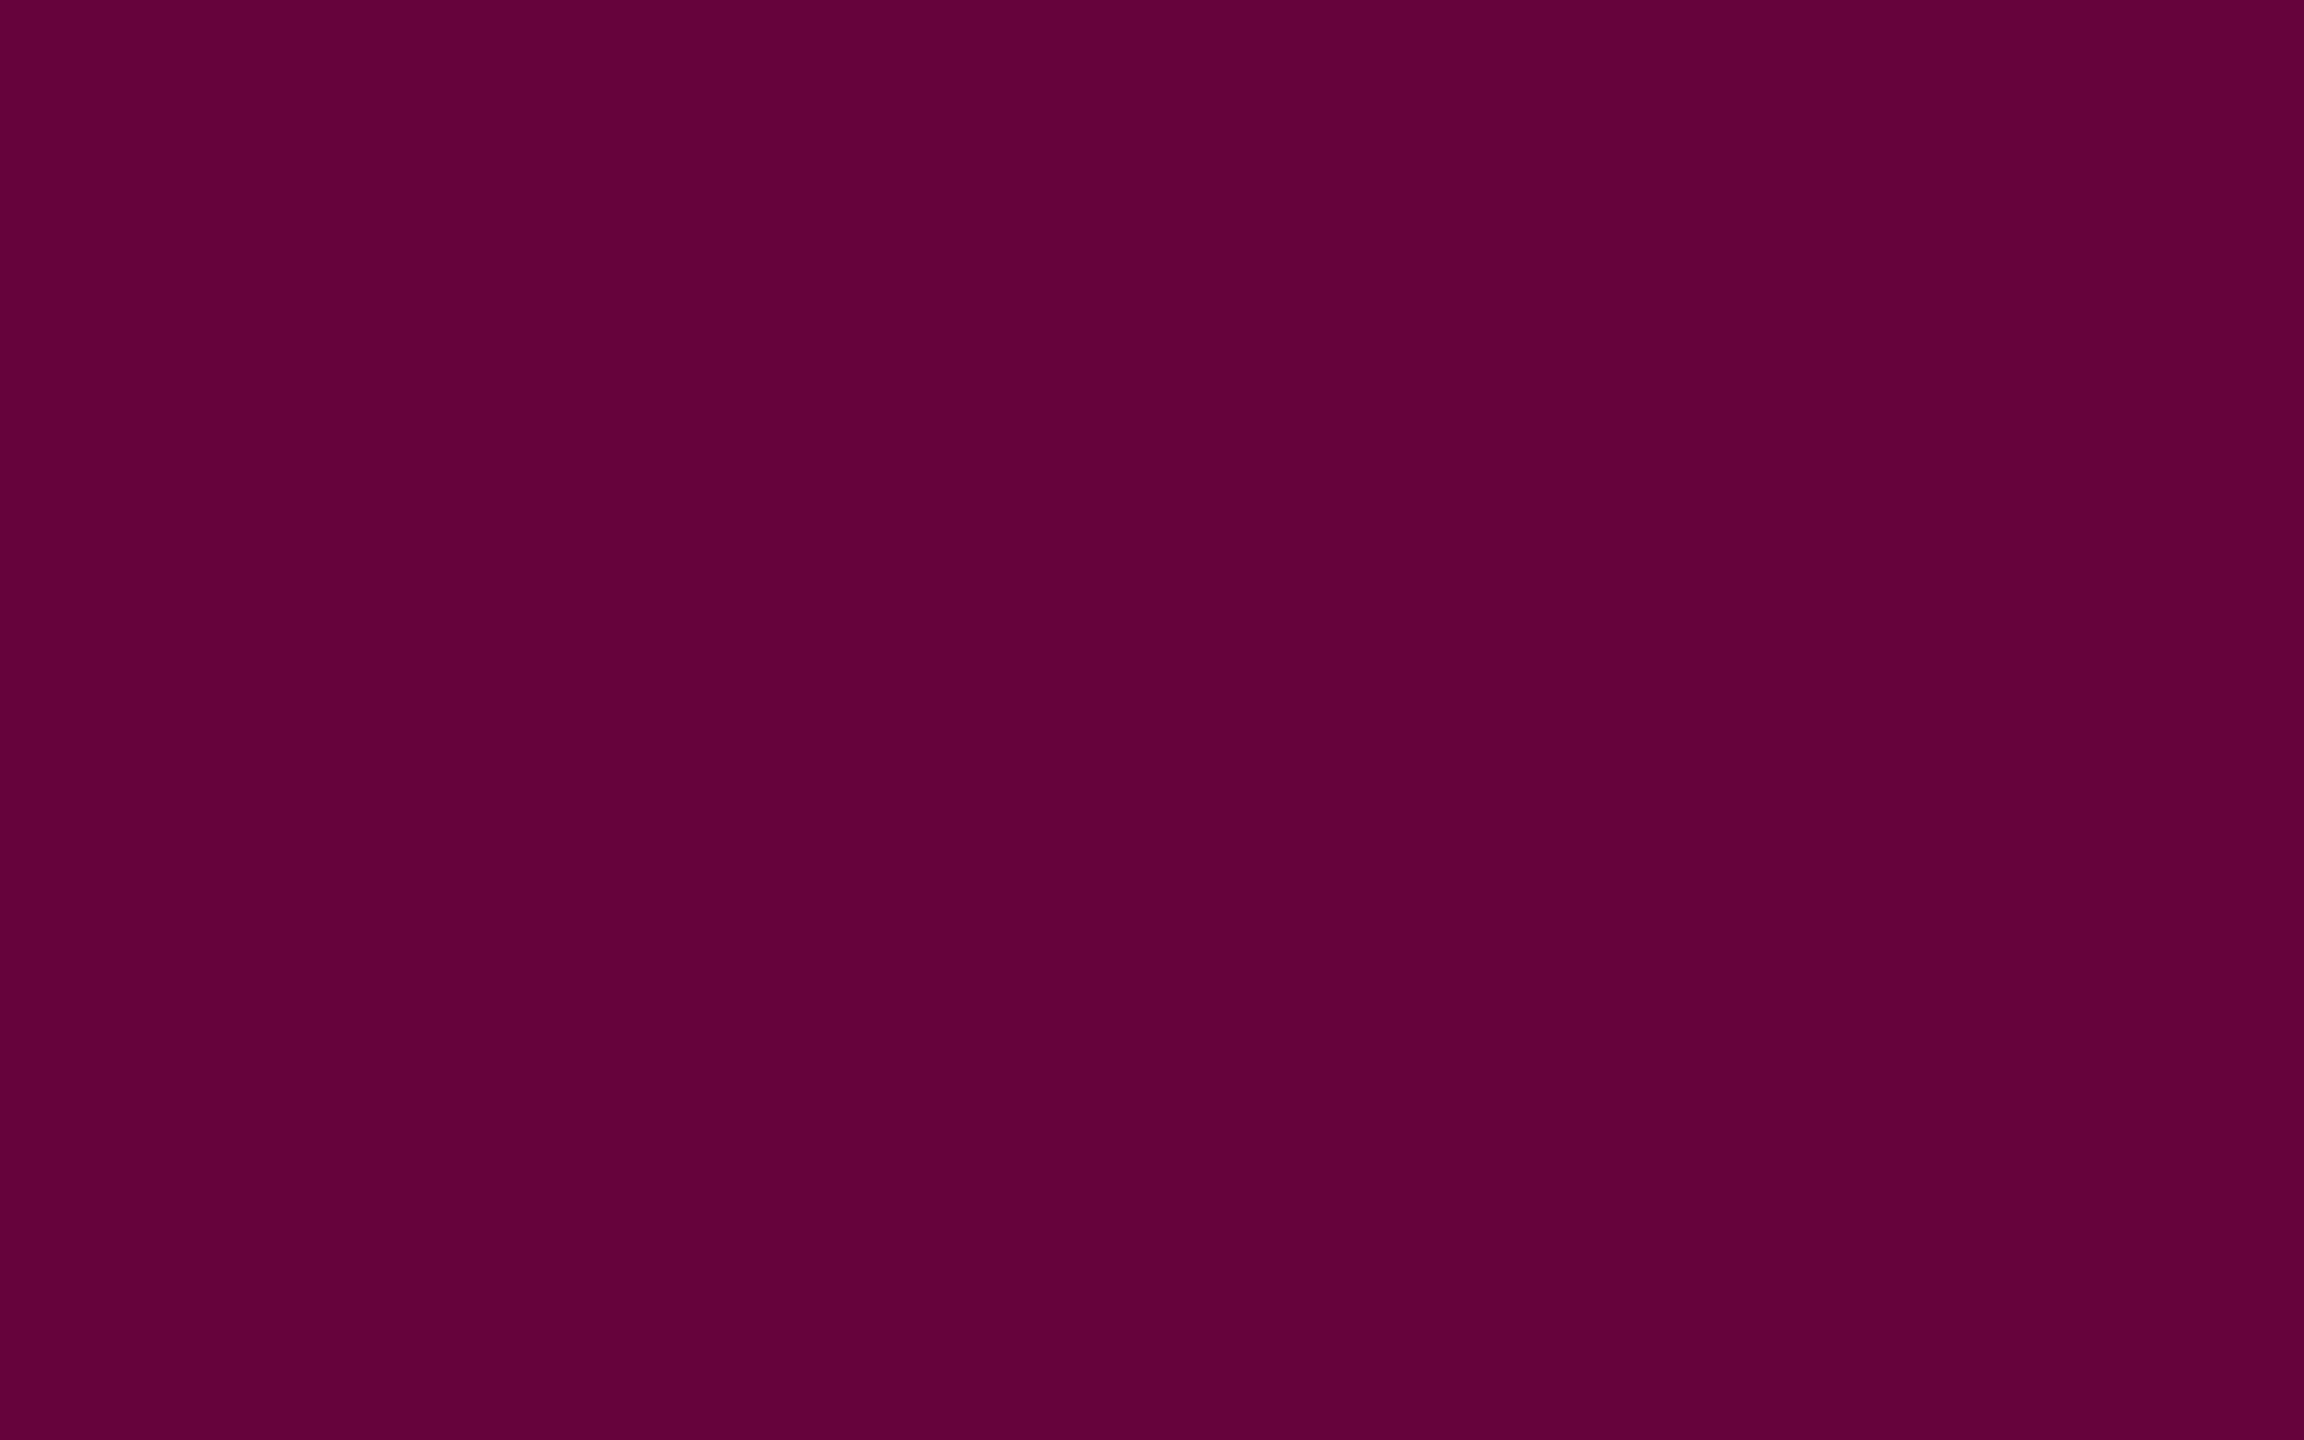 2304x1440 Tyrian Purple Solid Color Background